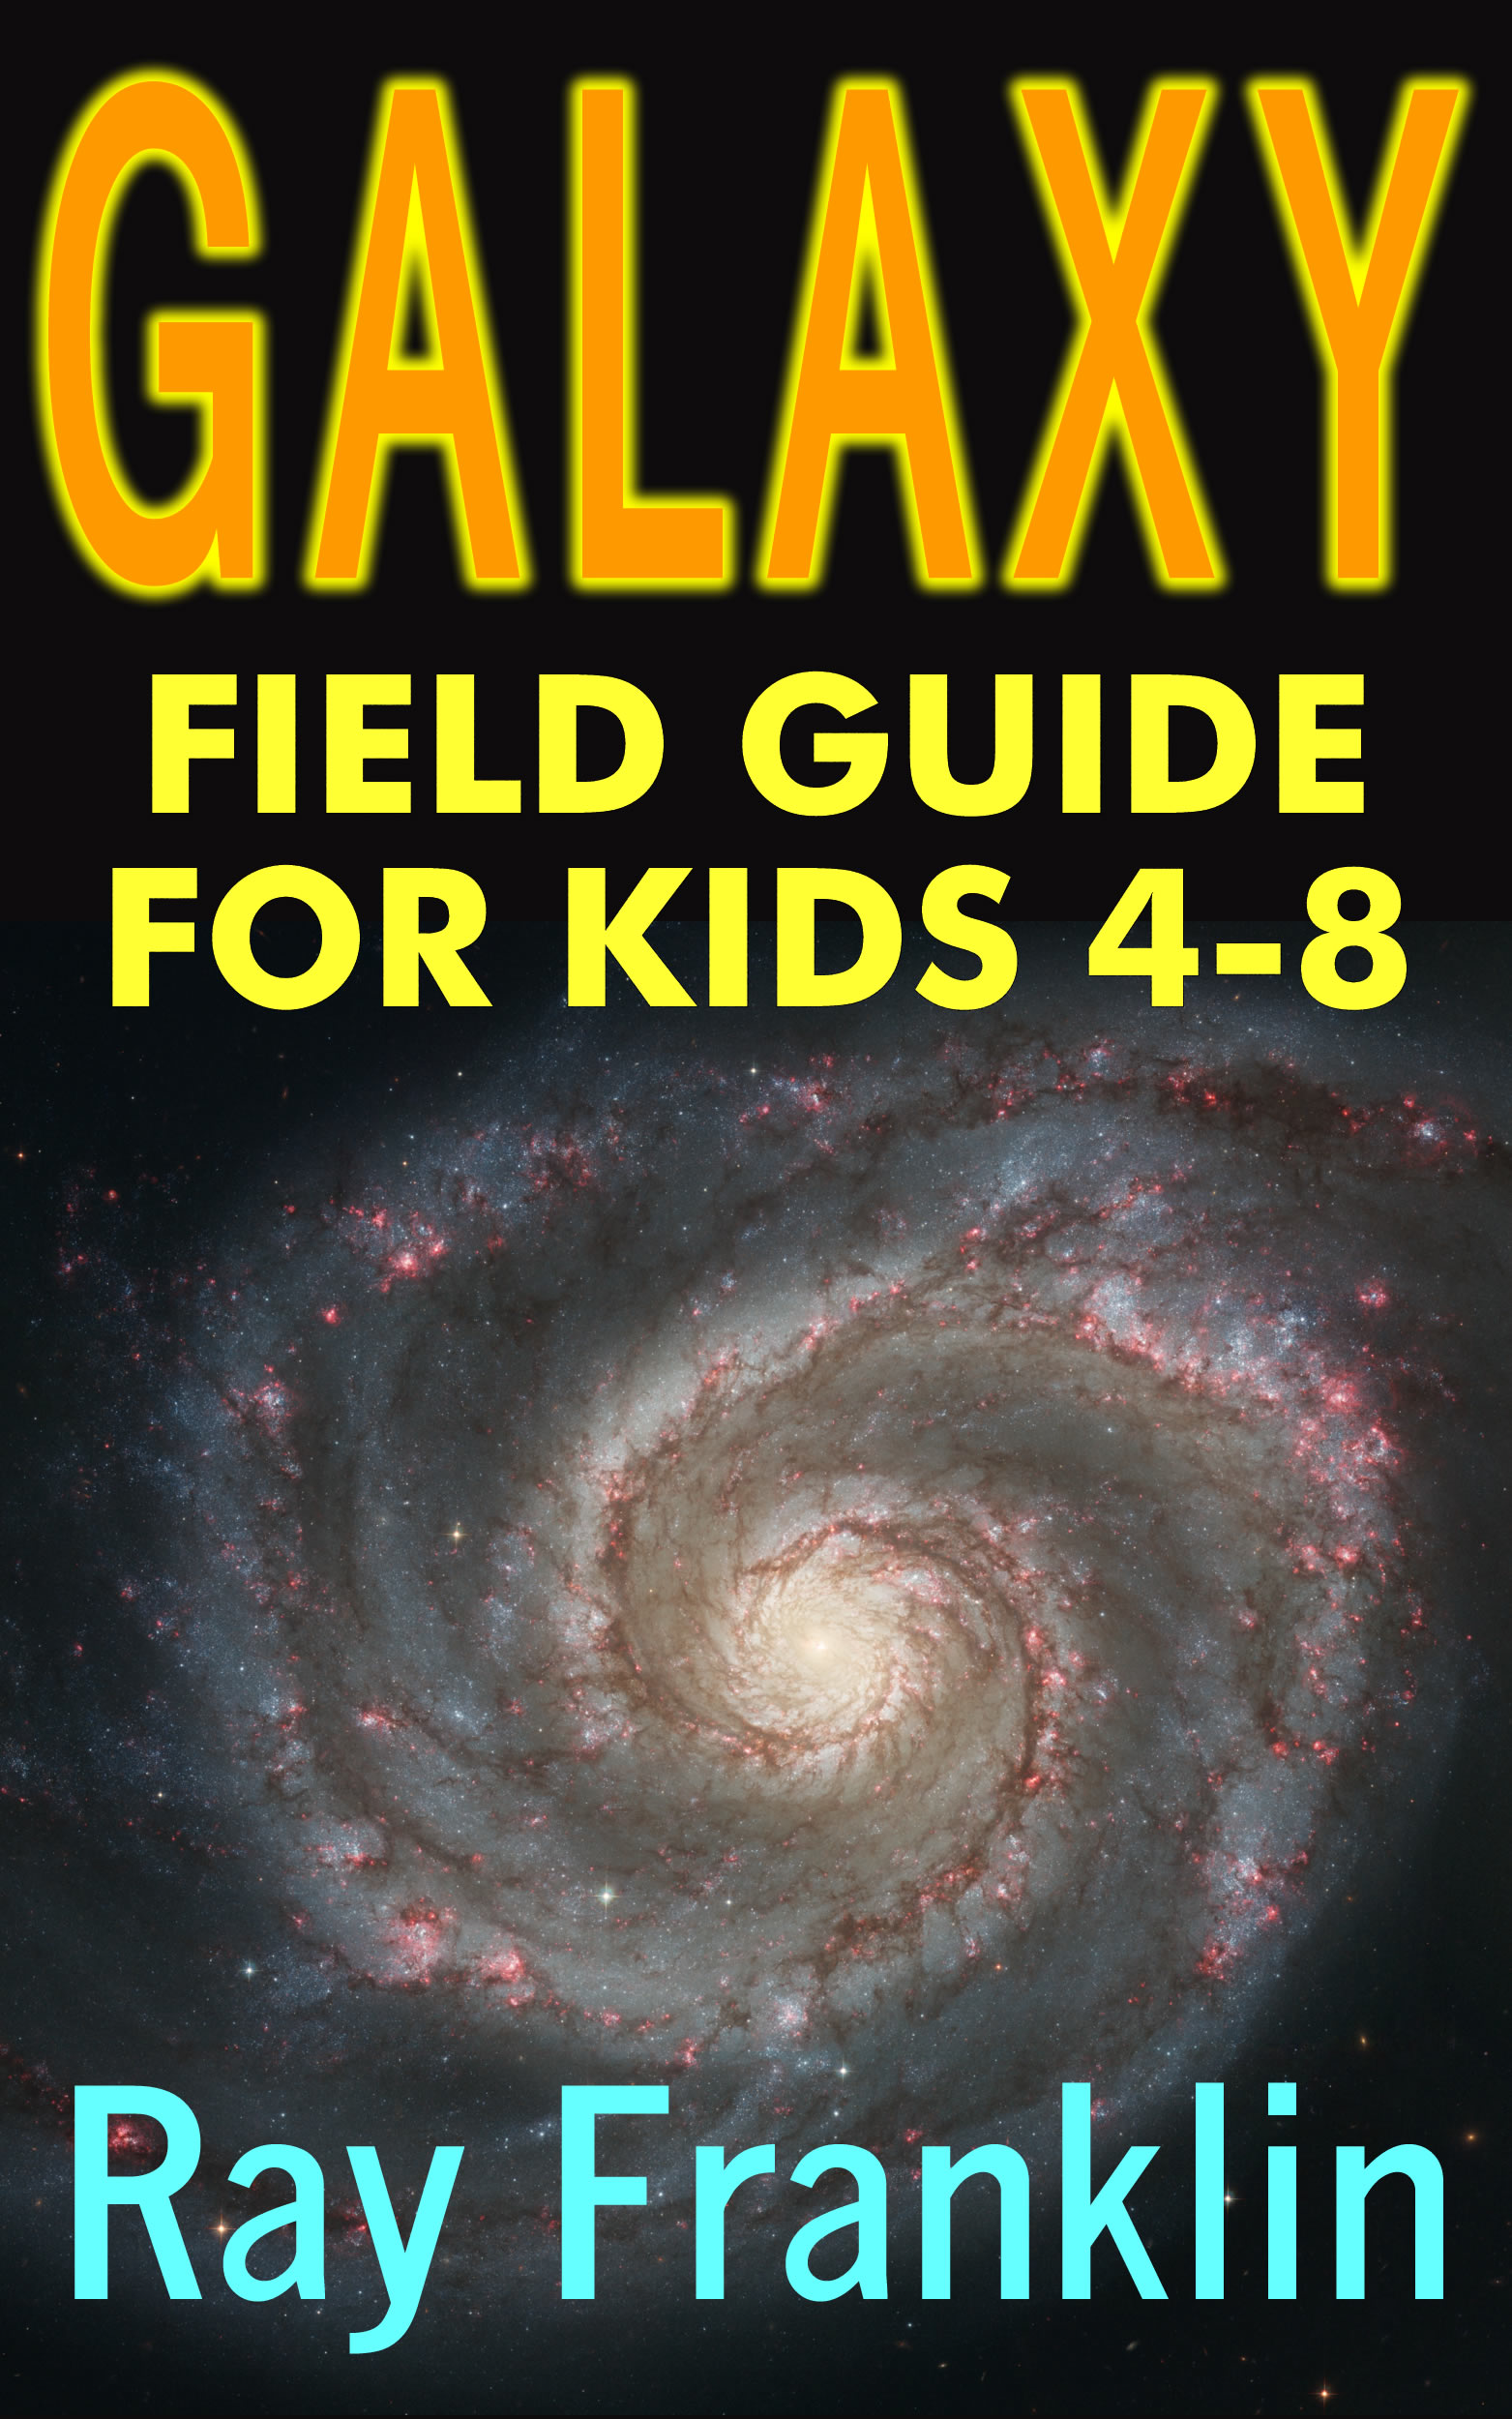 Galaxy Field Guide For Kids Age 4-8